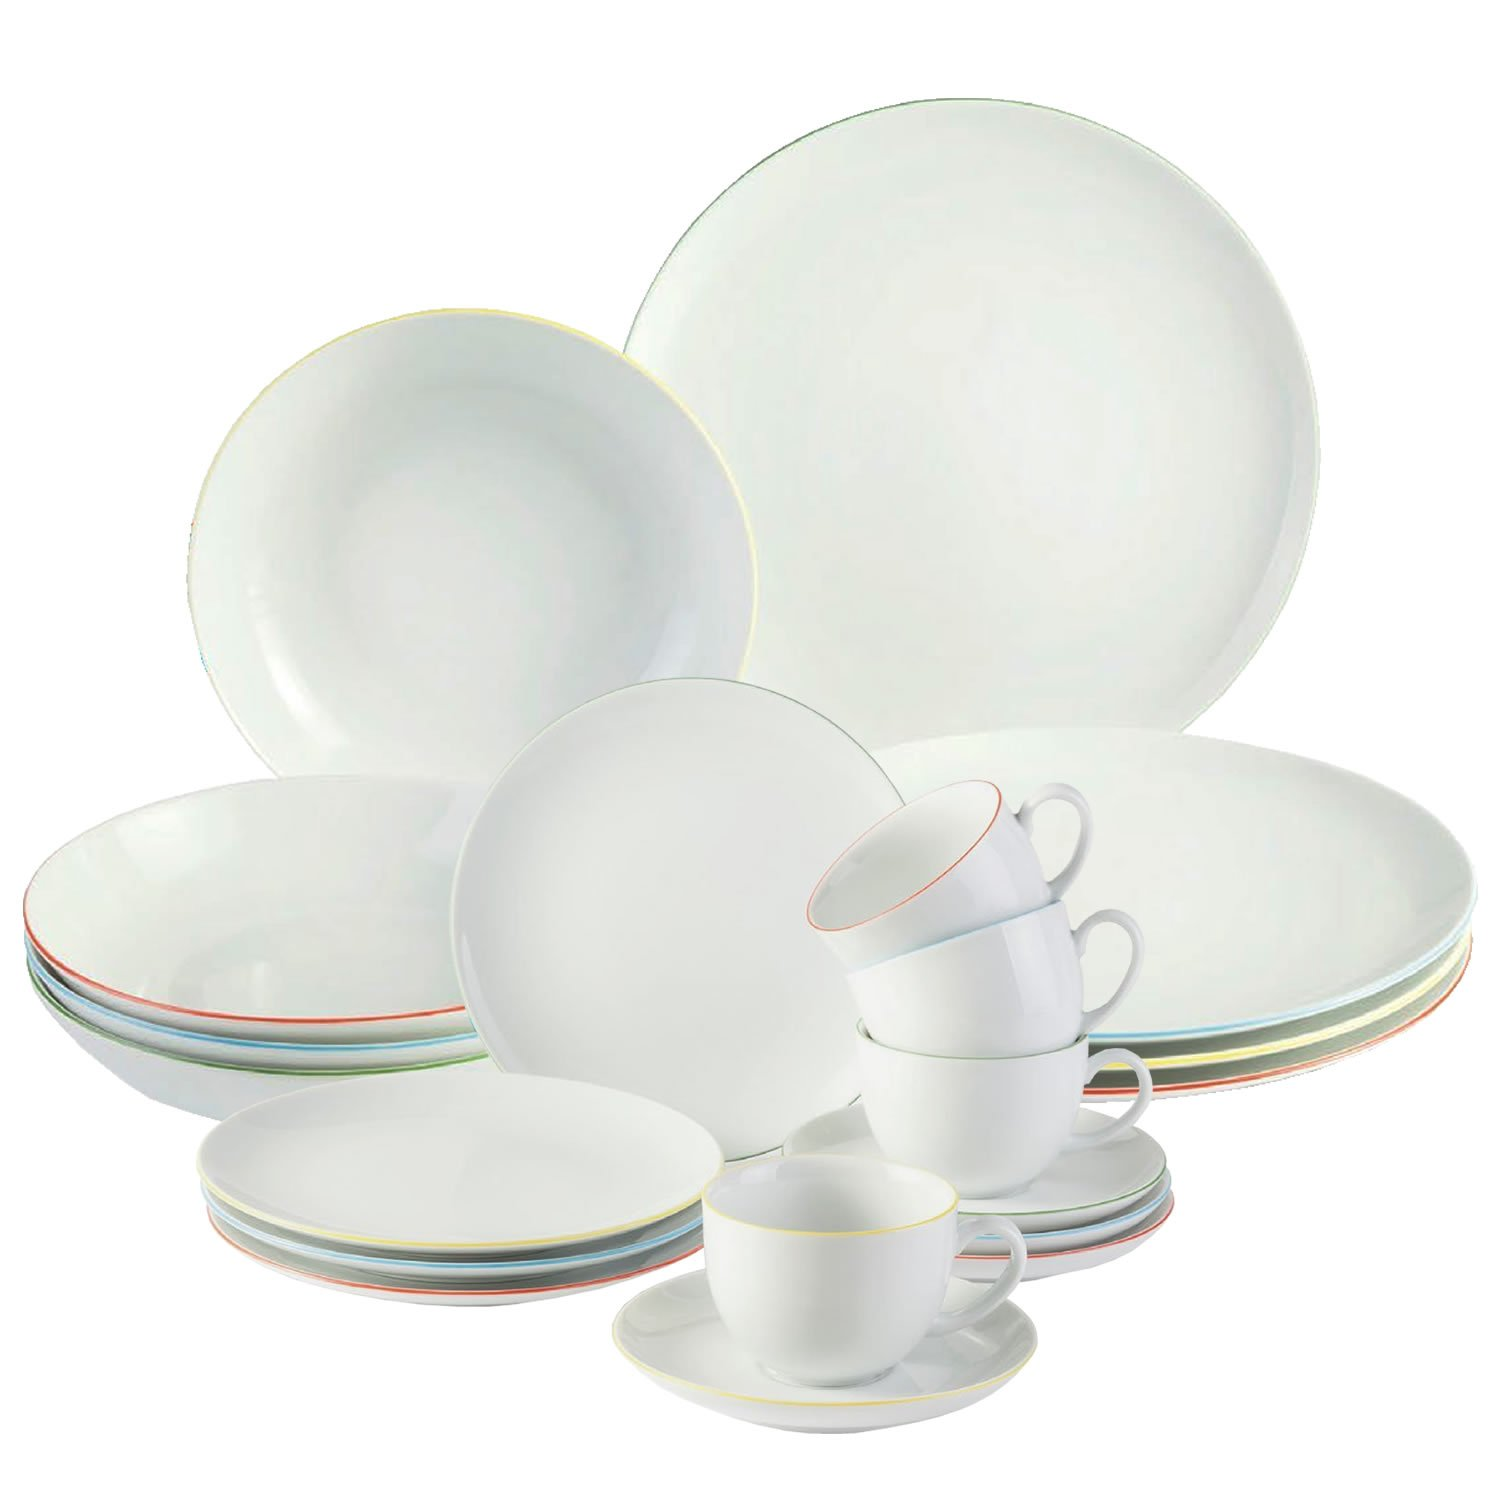 villeroy  boch fresh colour dinner set  pieces  x dinner  - villeroy  boch fresh colour dinner set  pieces  x dinner plates sideplates bowls coffee or tea cups and saucers modern designer whiteporcelain